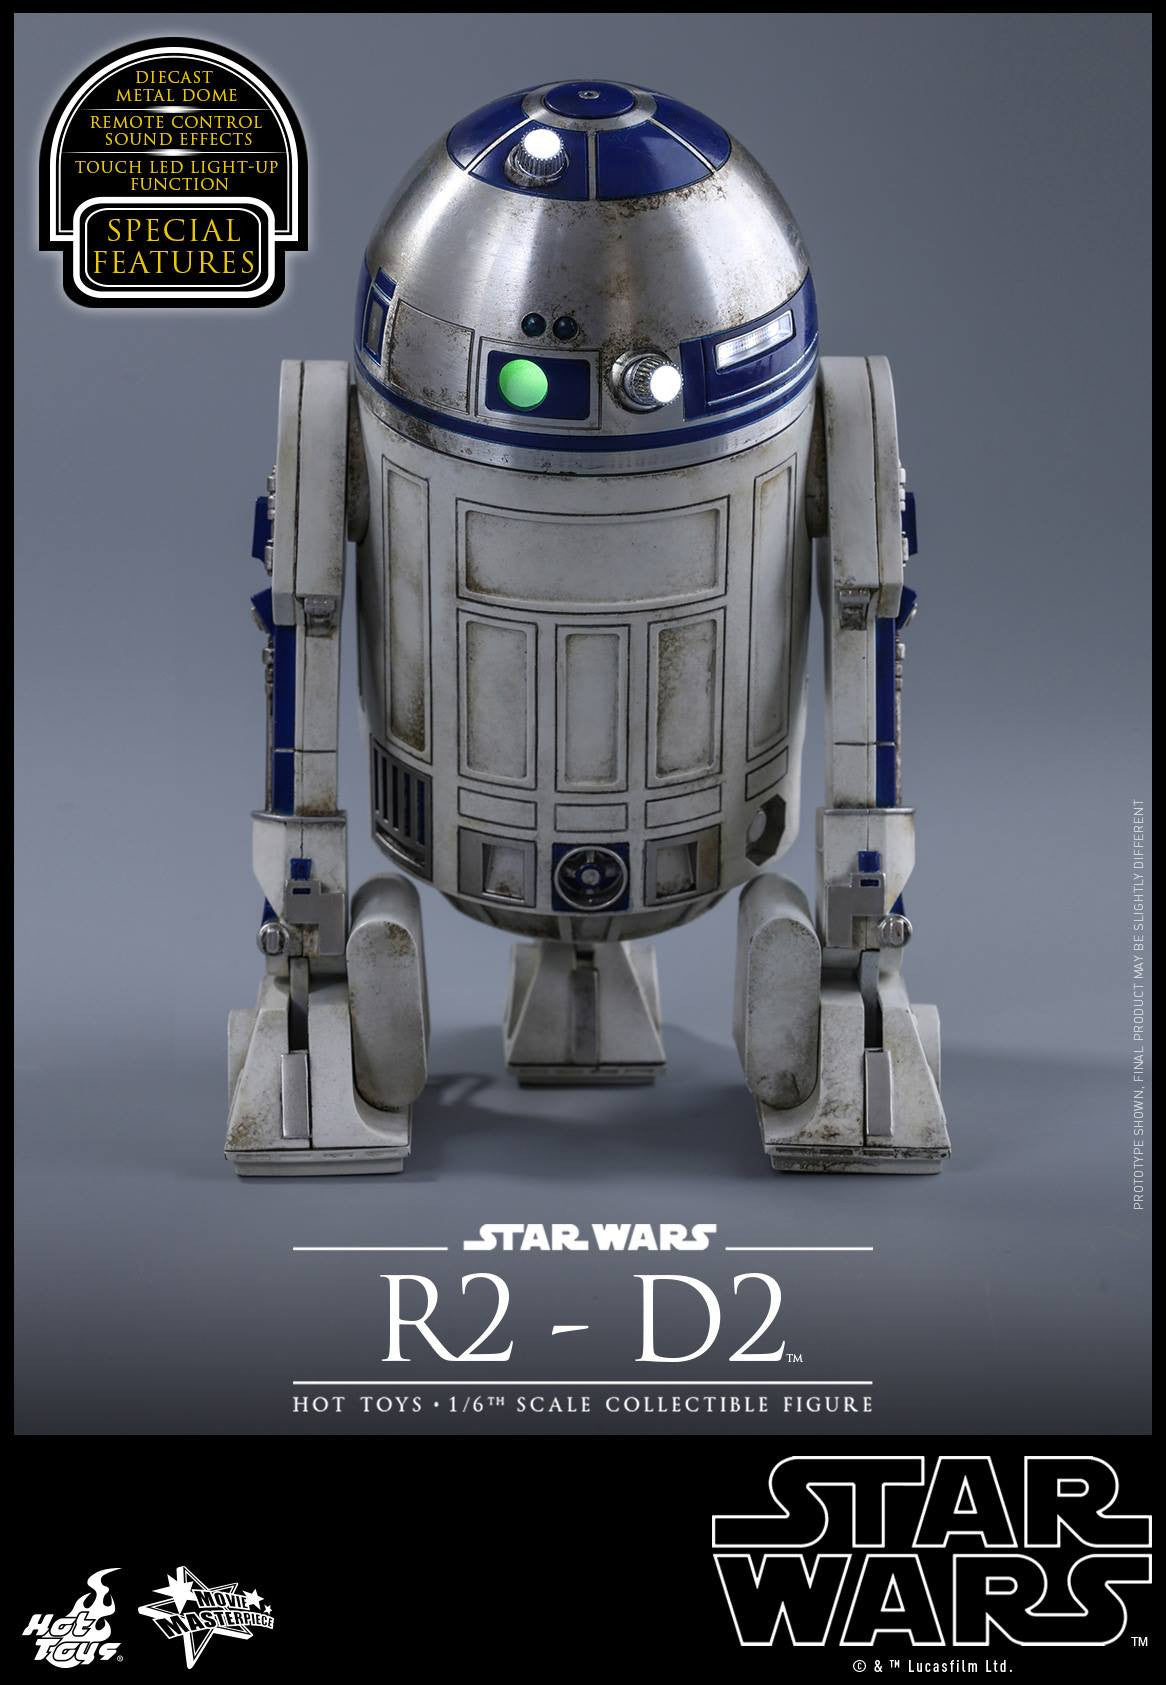 Hot Toys - MMS408 - Star Wars: The Force Awakens - R2-D2 - Marvelous Toys - 9